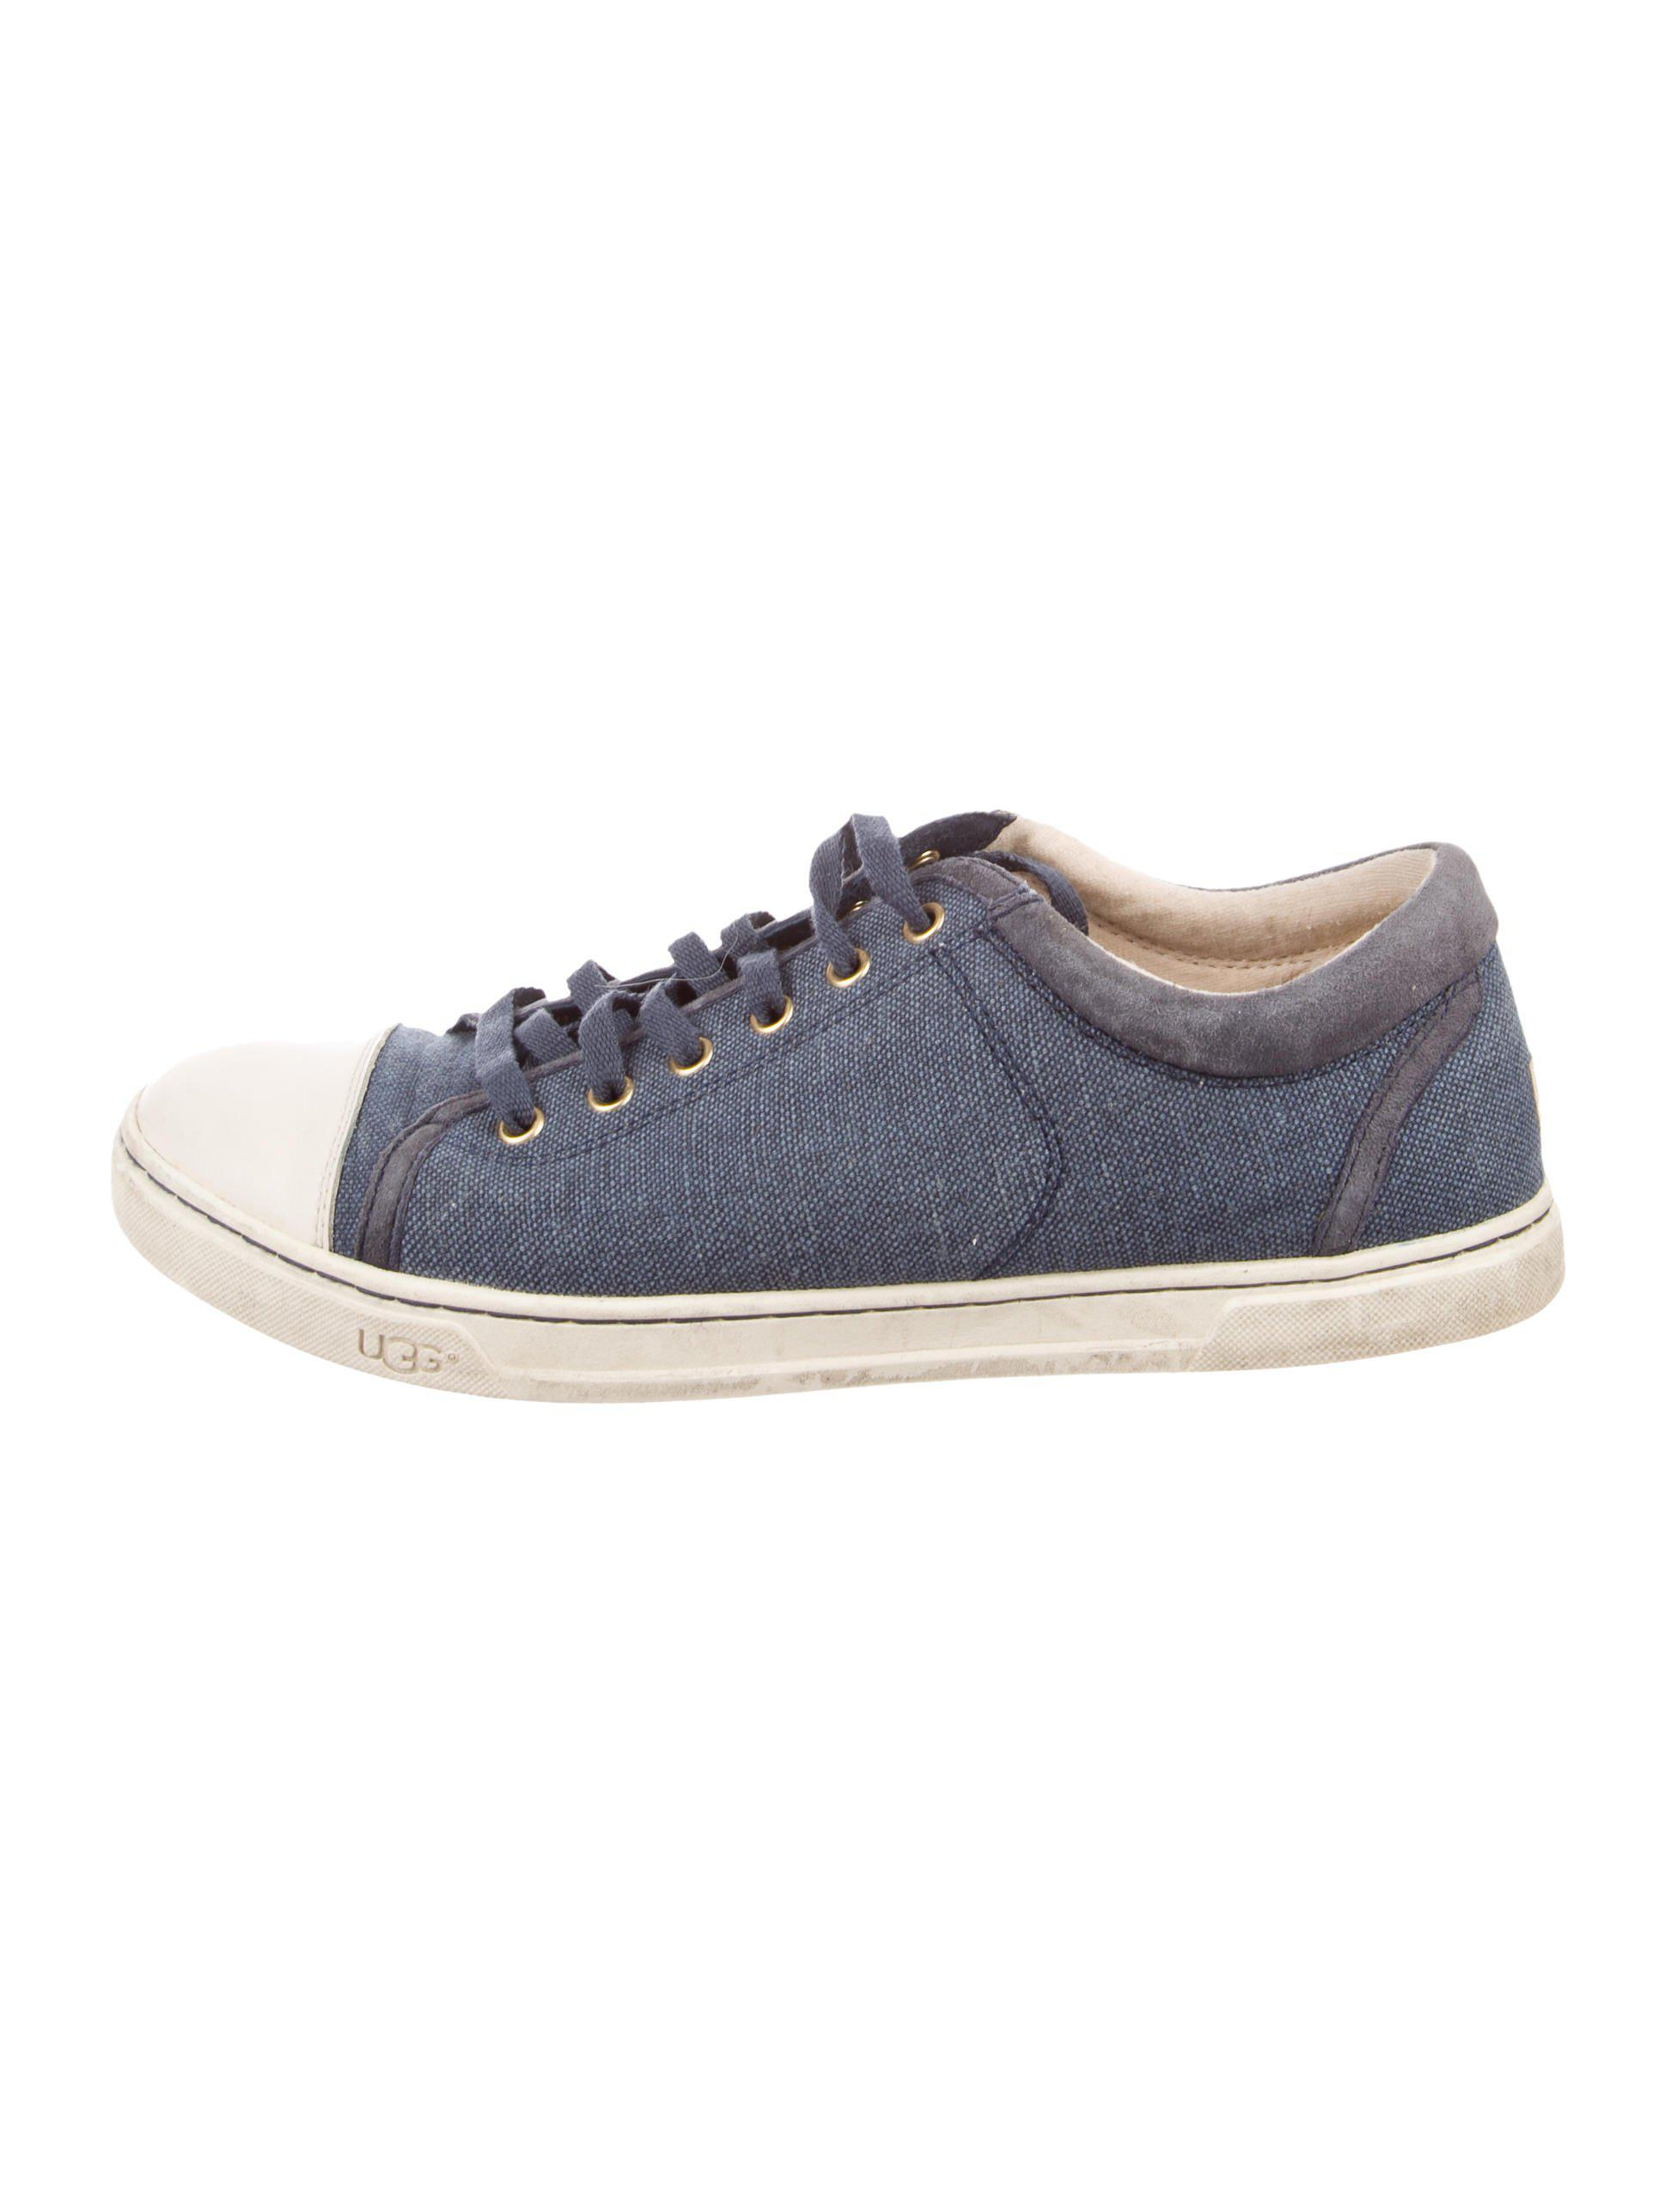 UGG. Women's Gray Cap-toe Low-top Sneakers Blue